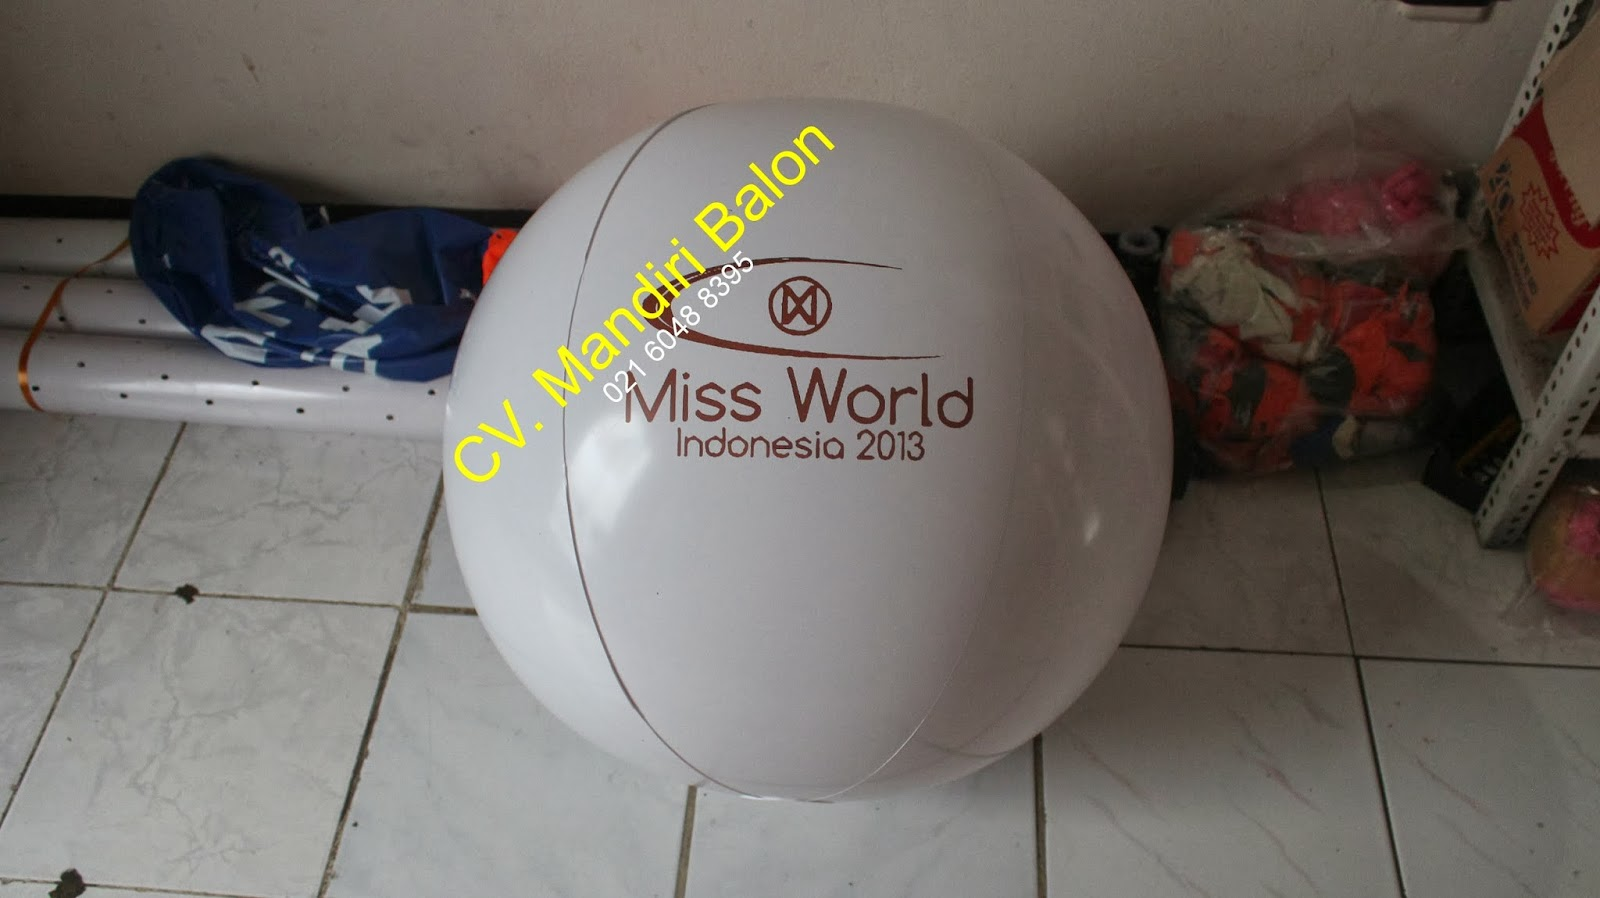 BALON PANTAI MISS WORLD